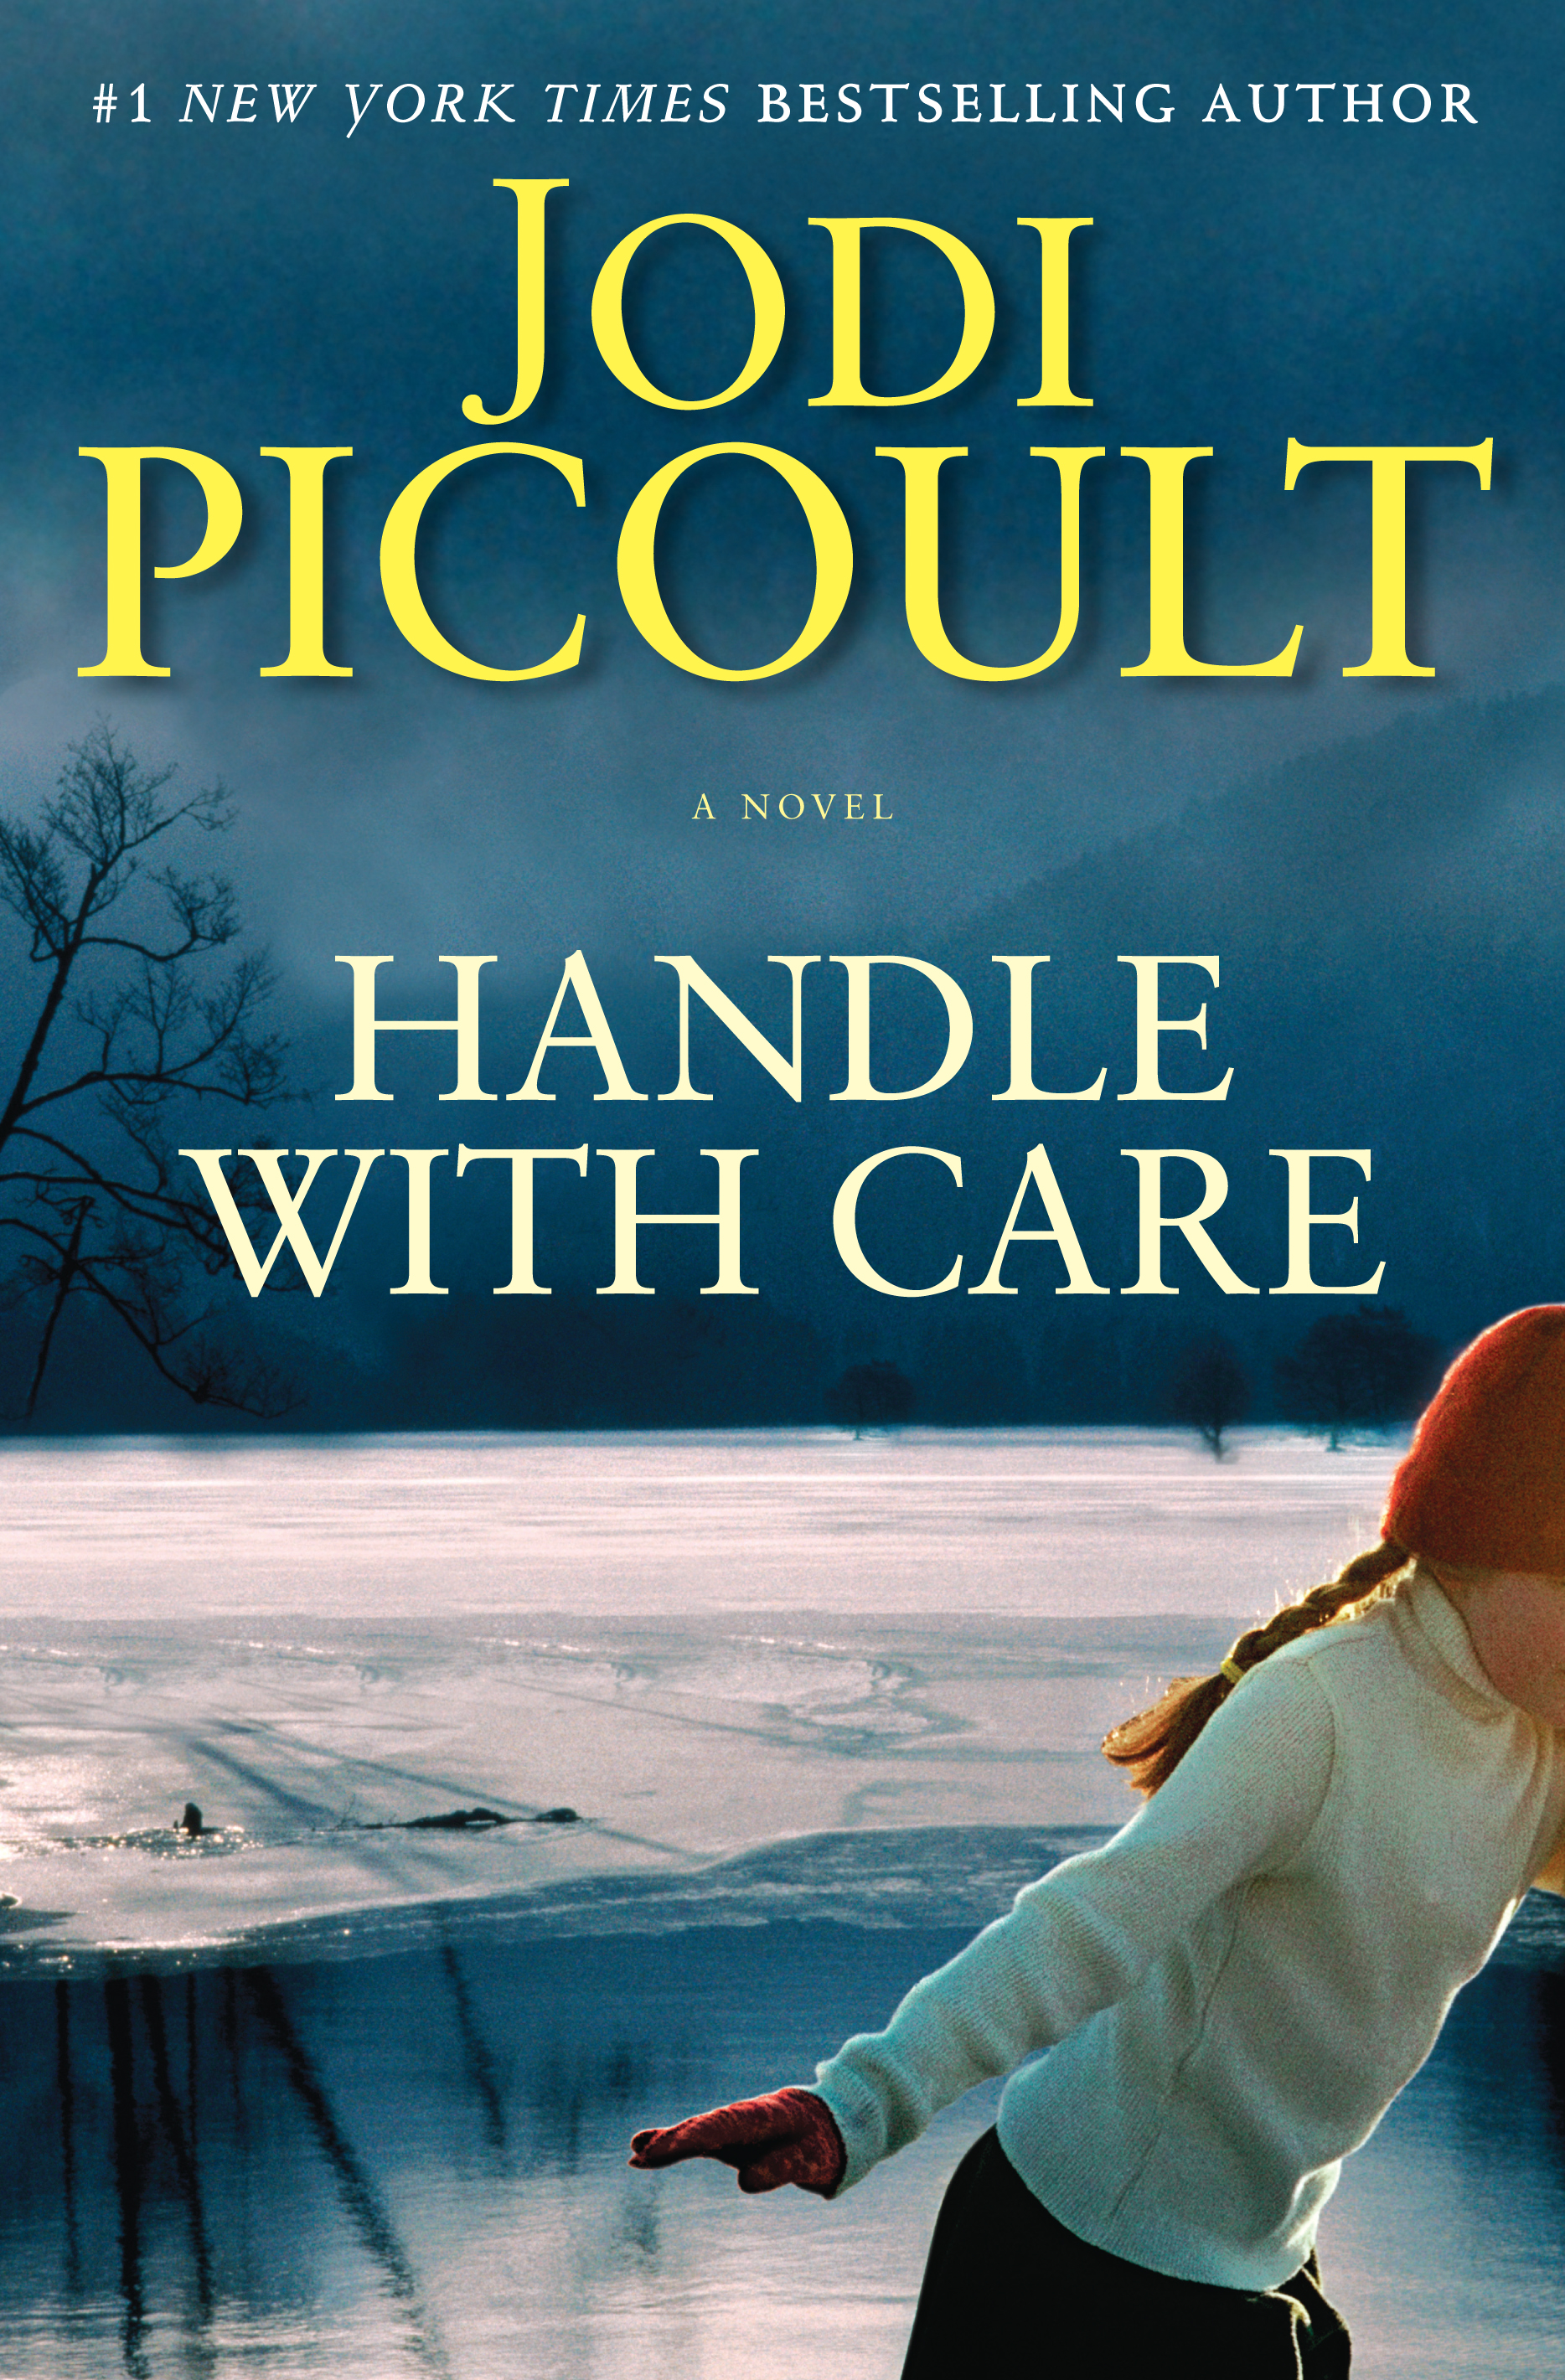 Book Cover Image (jpg): Handle with Care